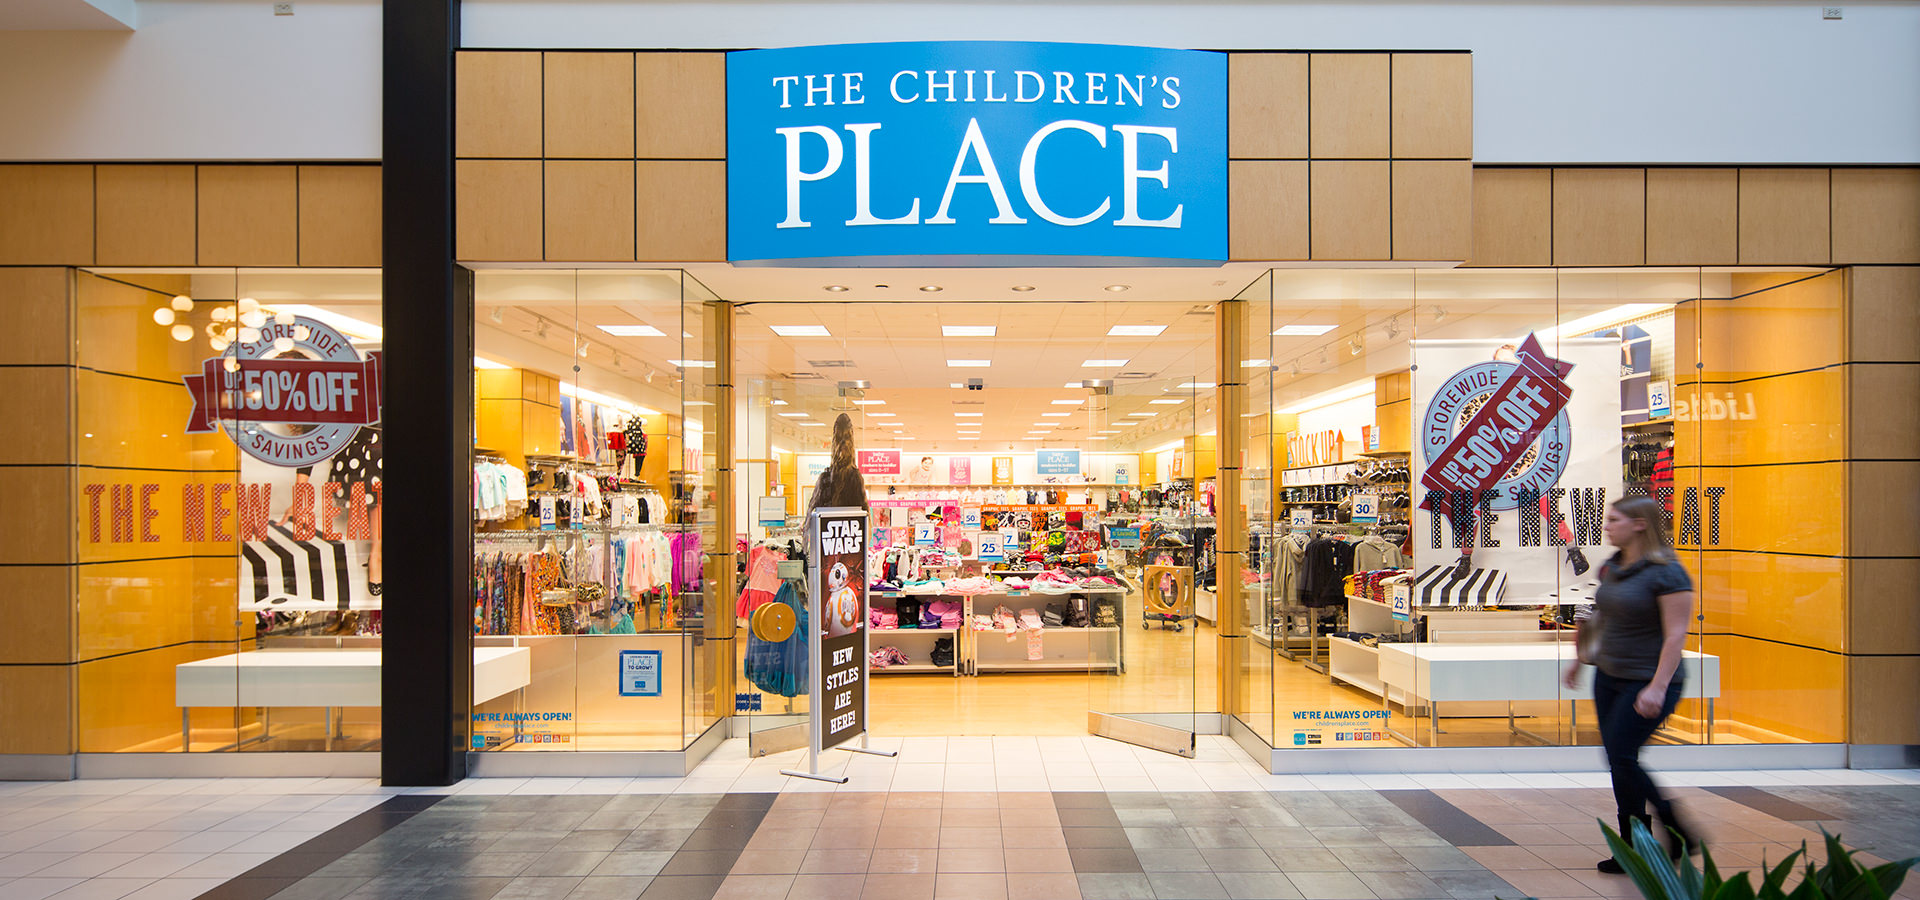 The latest Tweets from The Children's Place (@childrensplace). The Children's Place is your one-stop shop for quality apparel at unmatched value for kids in sizes newborn to Shop the PLACE where fashion meets fun!Account Status: Verified.